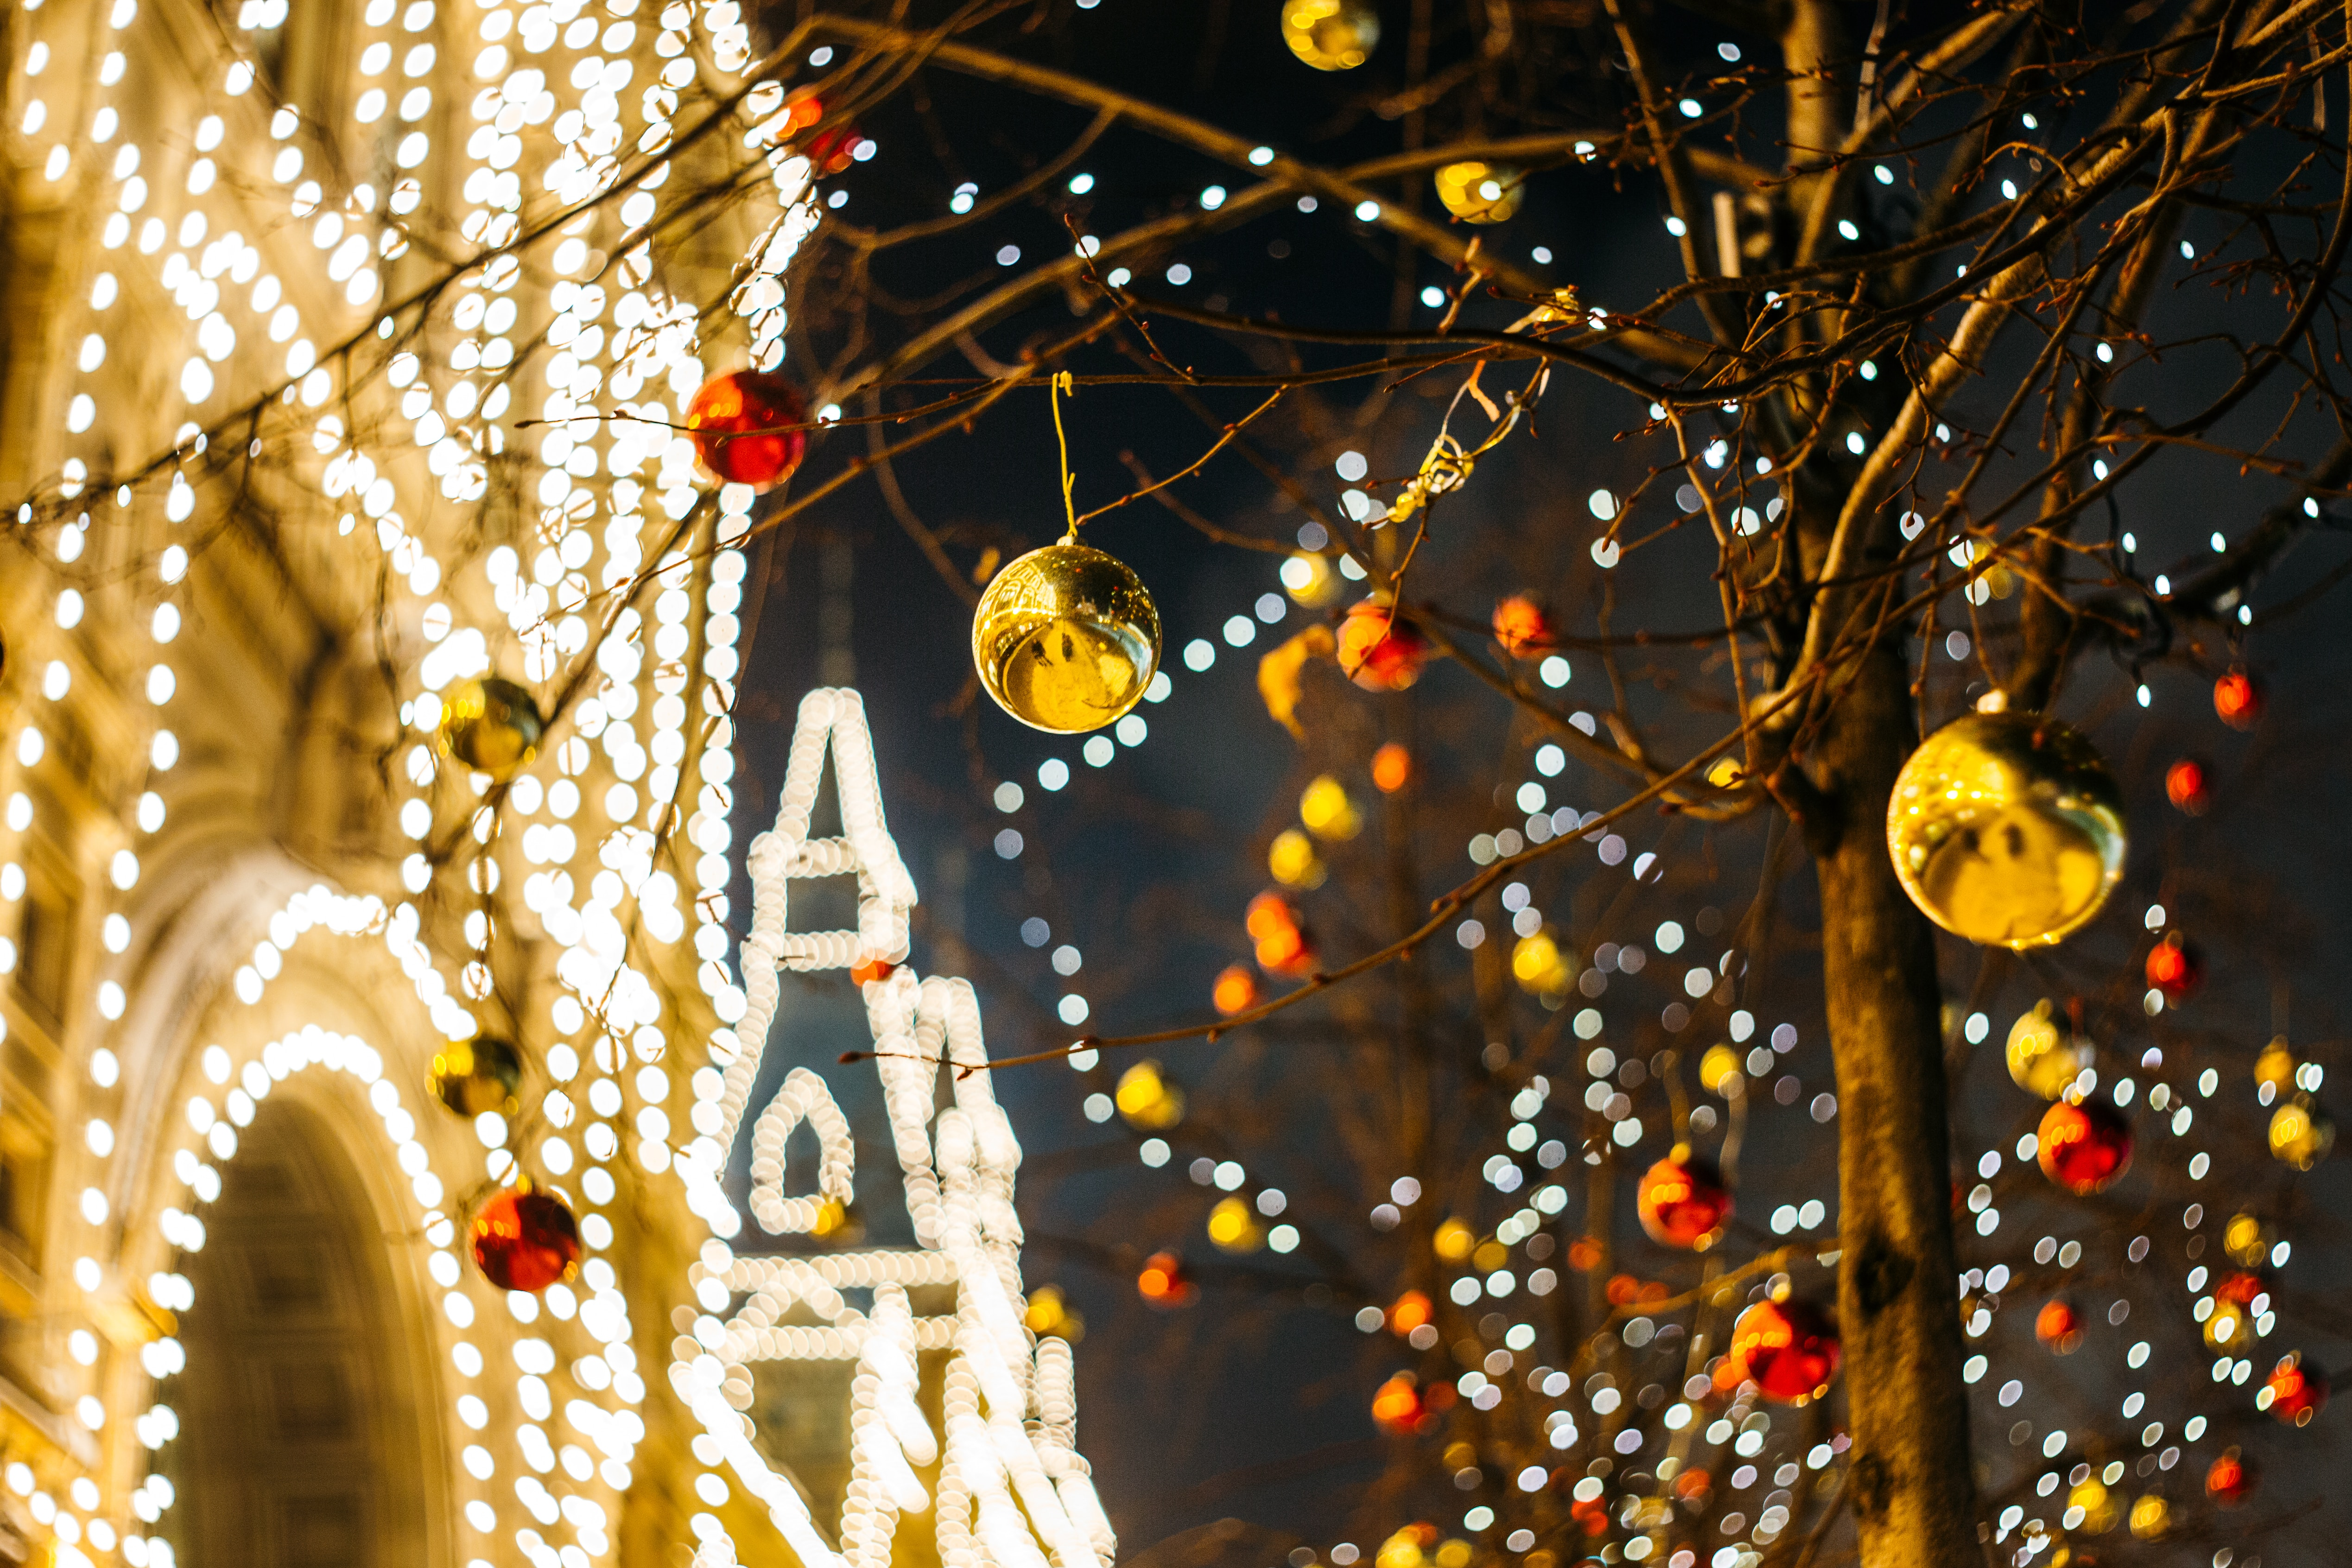 A tree decorated with ornaments in front of a holiday light display.